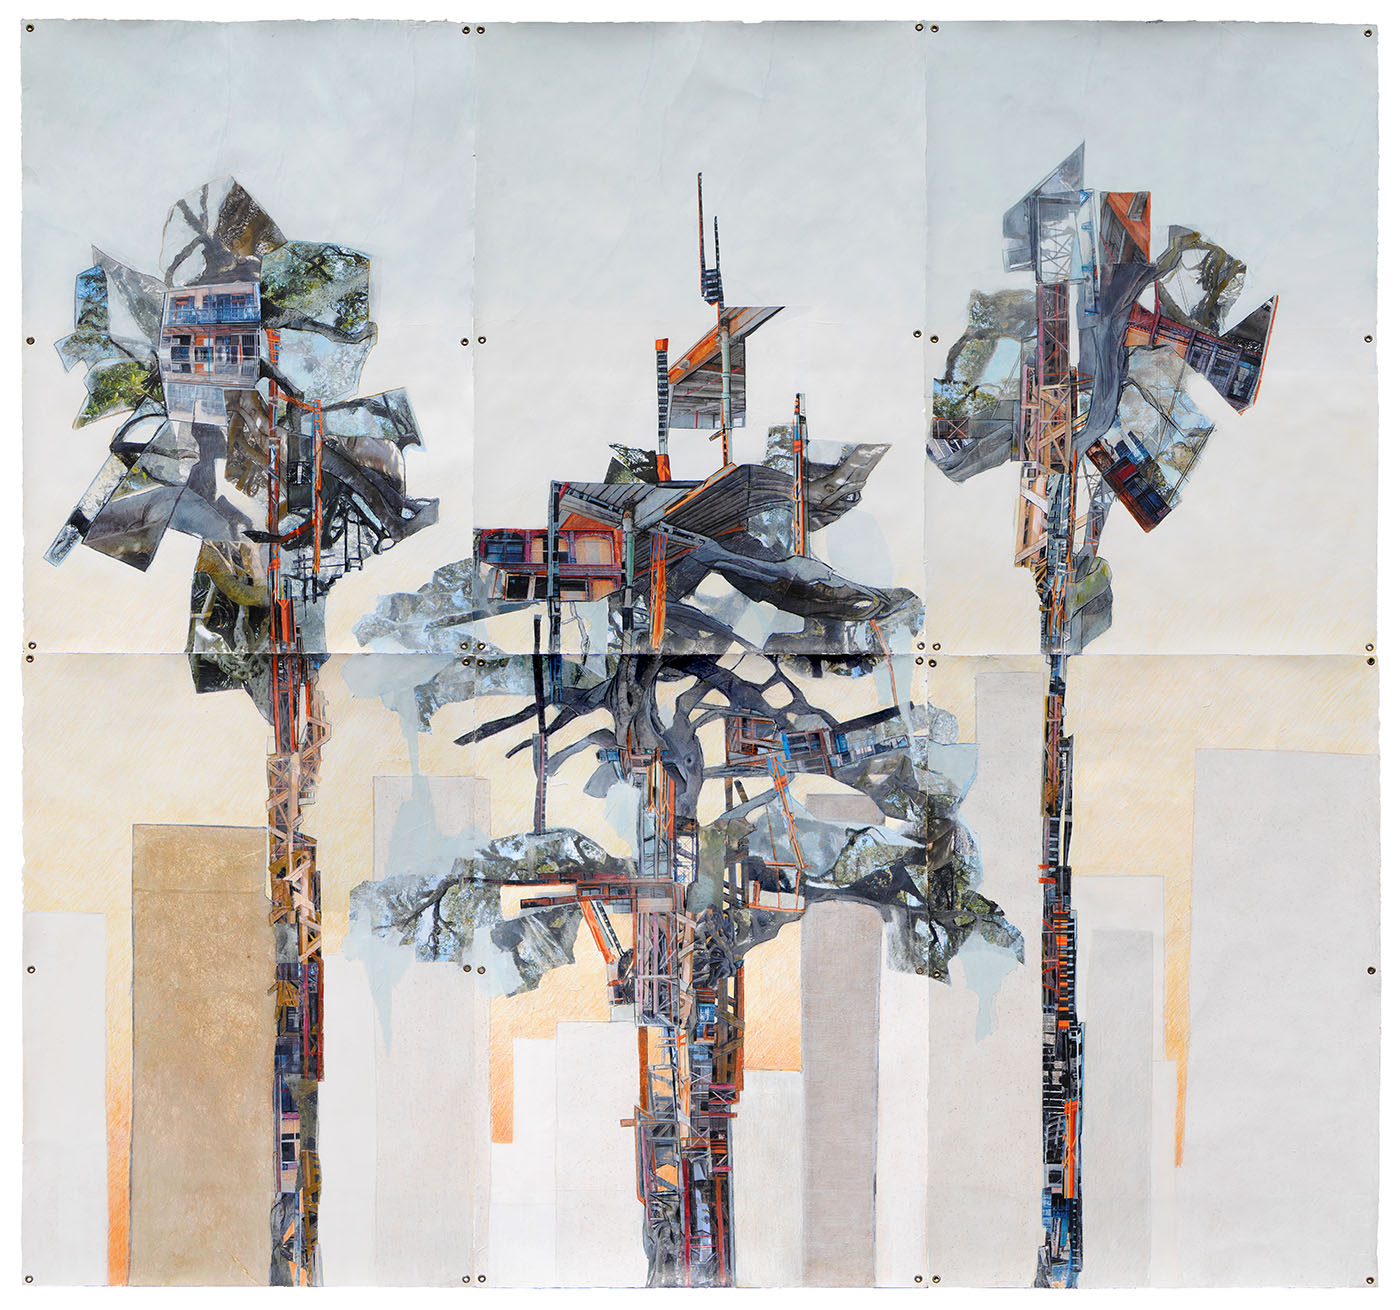 Habitat 2017 Mixed media paper collage and drawing on 6 sheets Stonehenge paper 88 x 90 inches